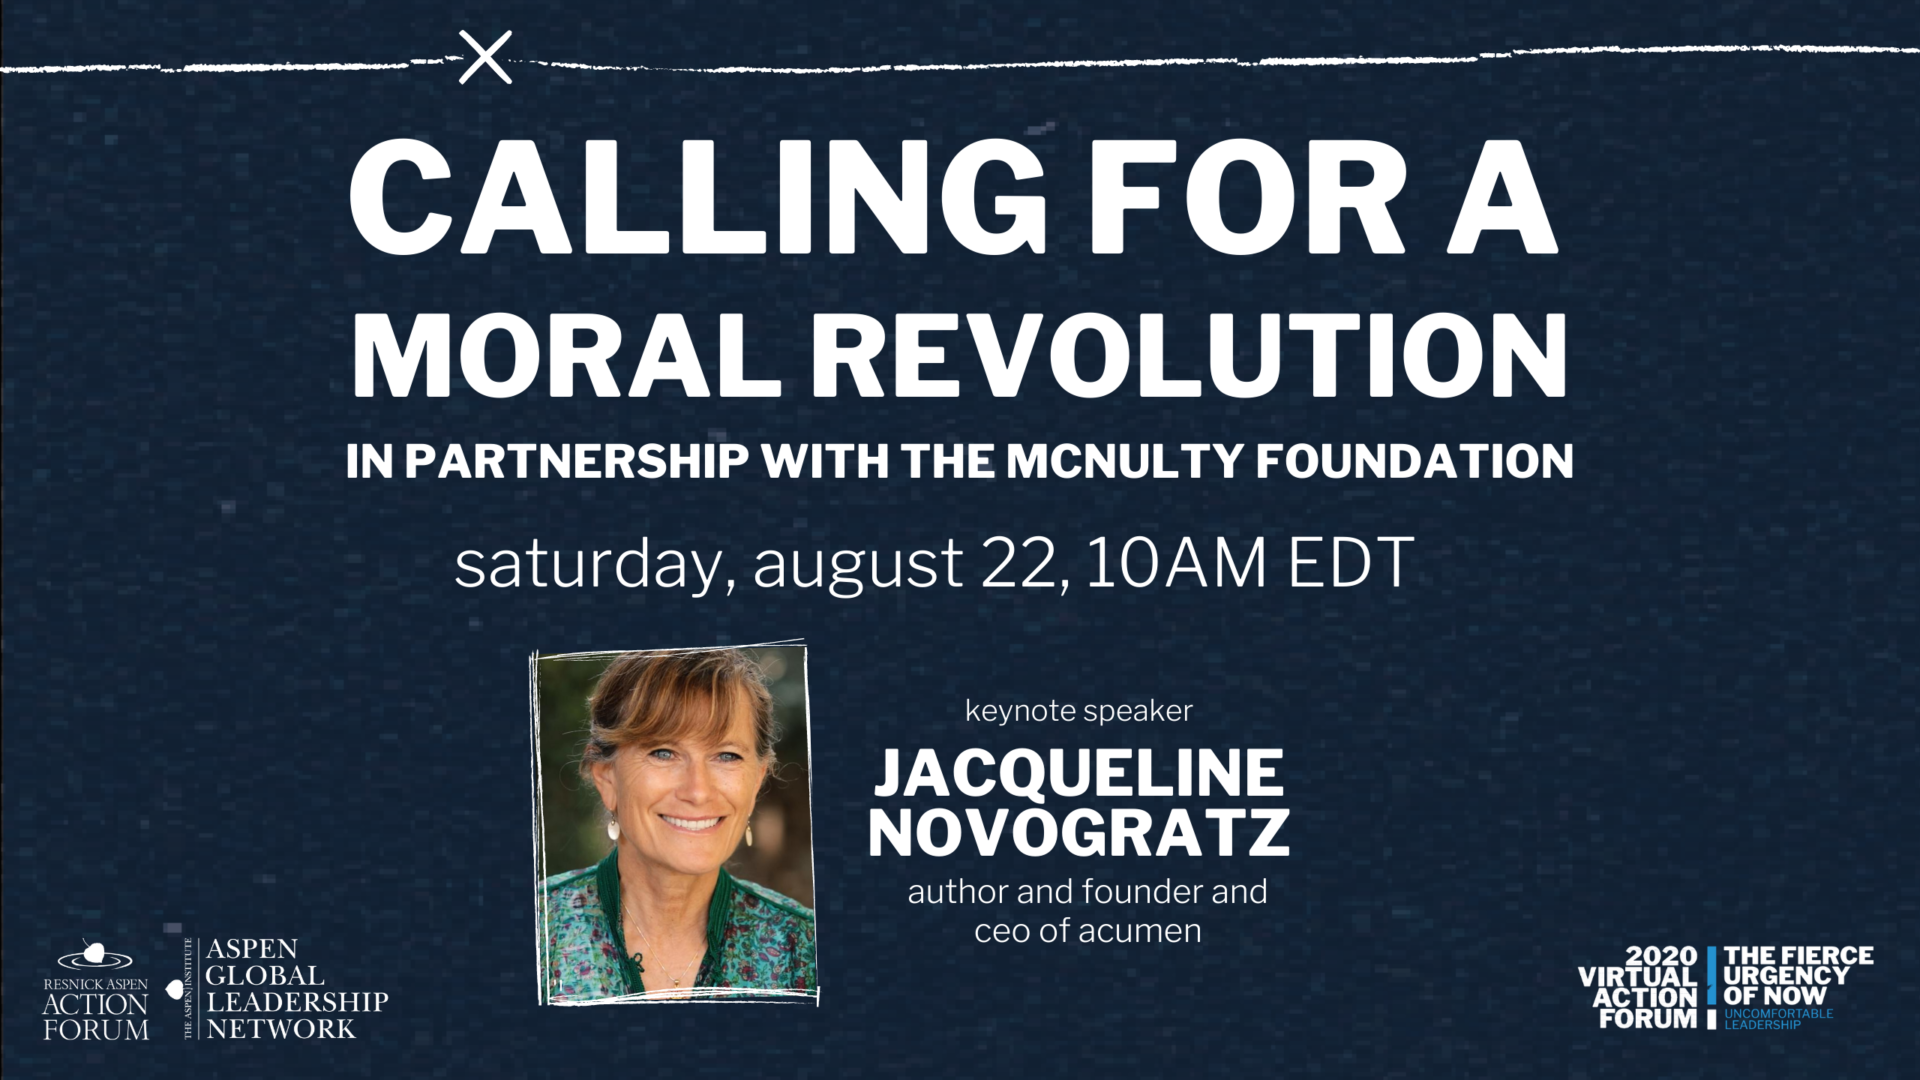 Calling for a Moral Revolution